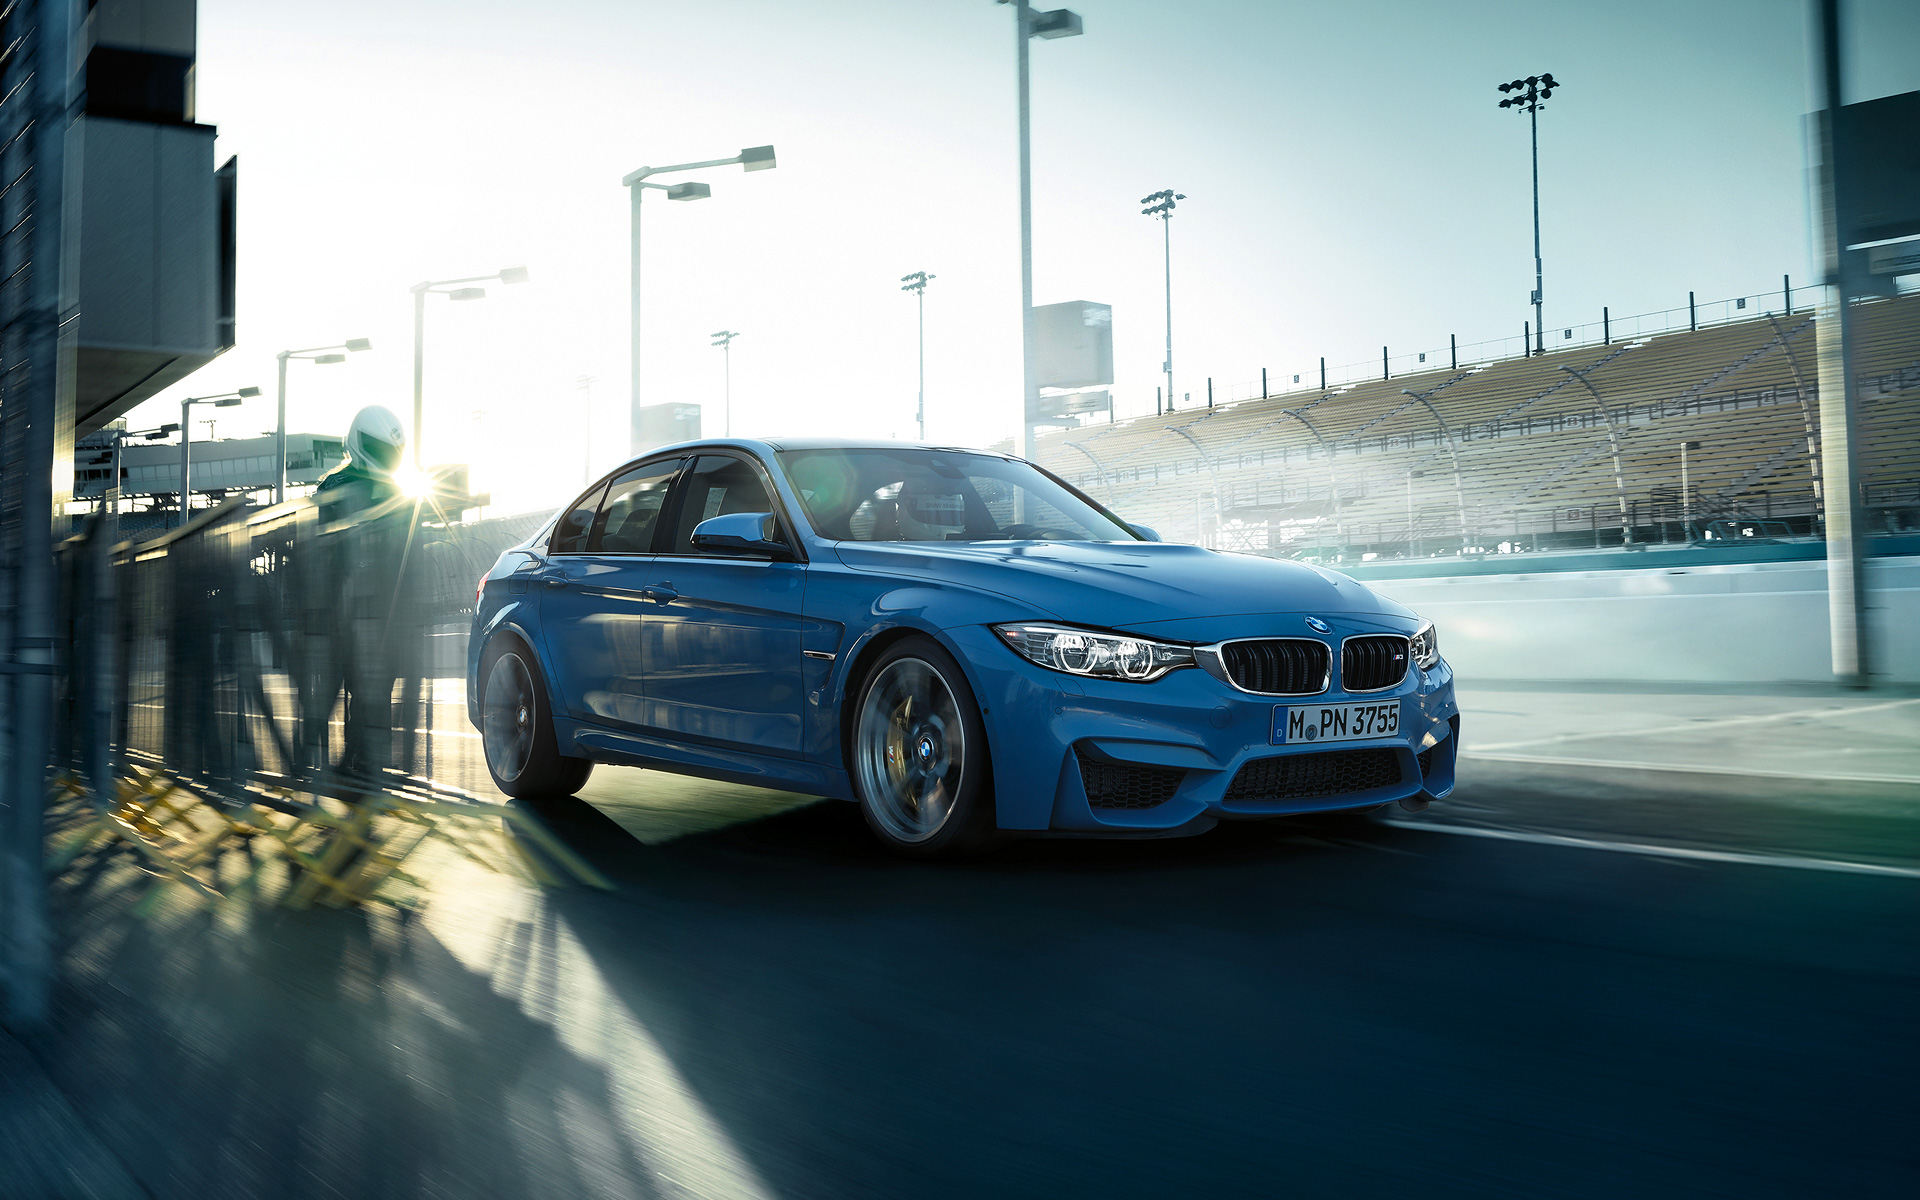 BMW M3 Sedan sports car on road